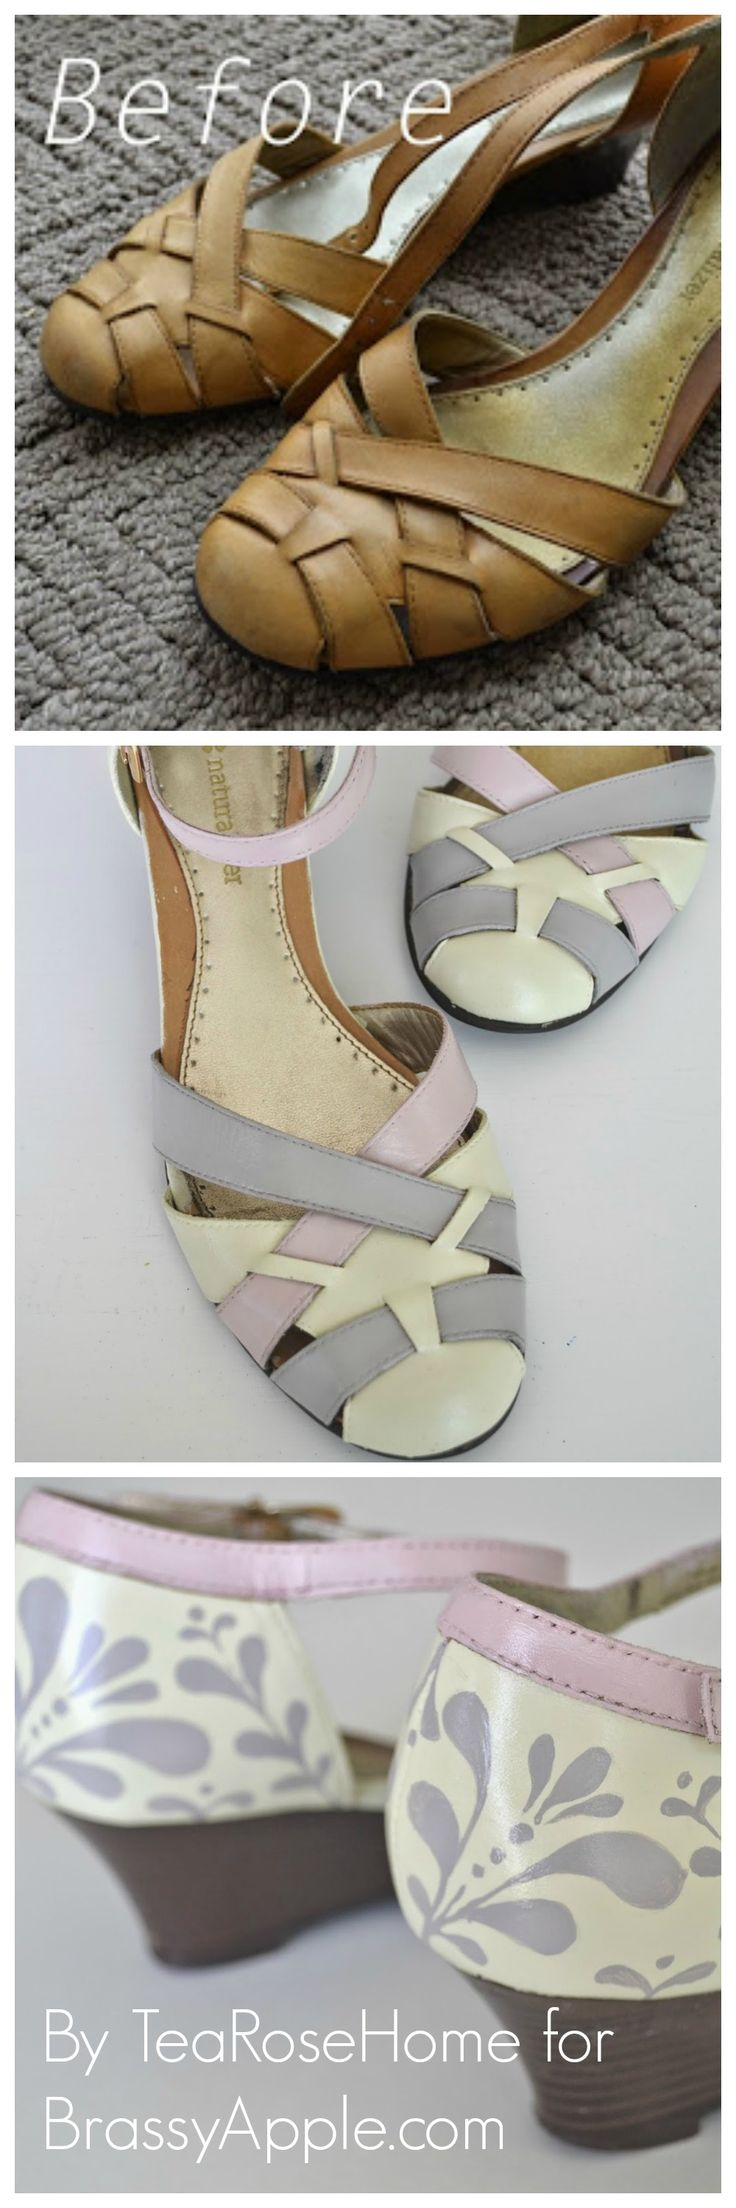 Refashion sandals or shoes with paint from @Sachiko Asai Asai Aldous on BrassyApple.com #paint #makeover #fashion